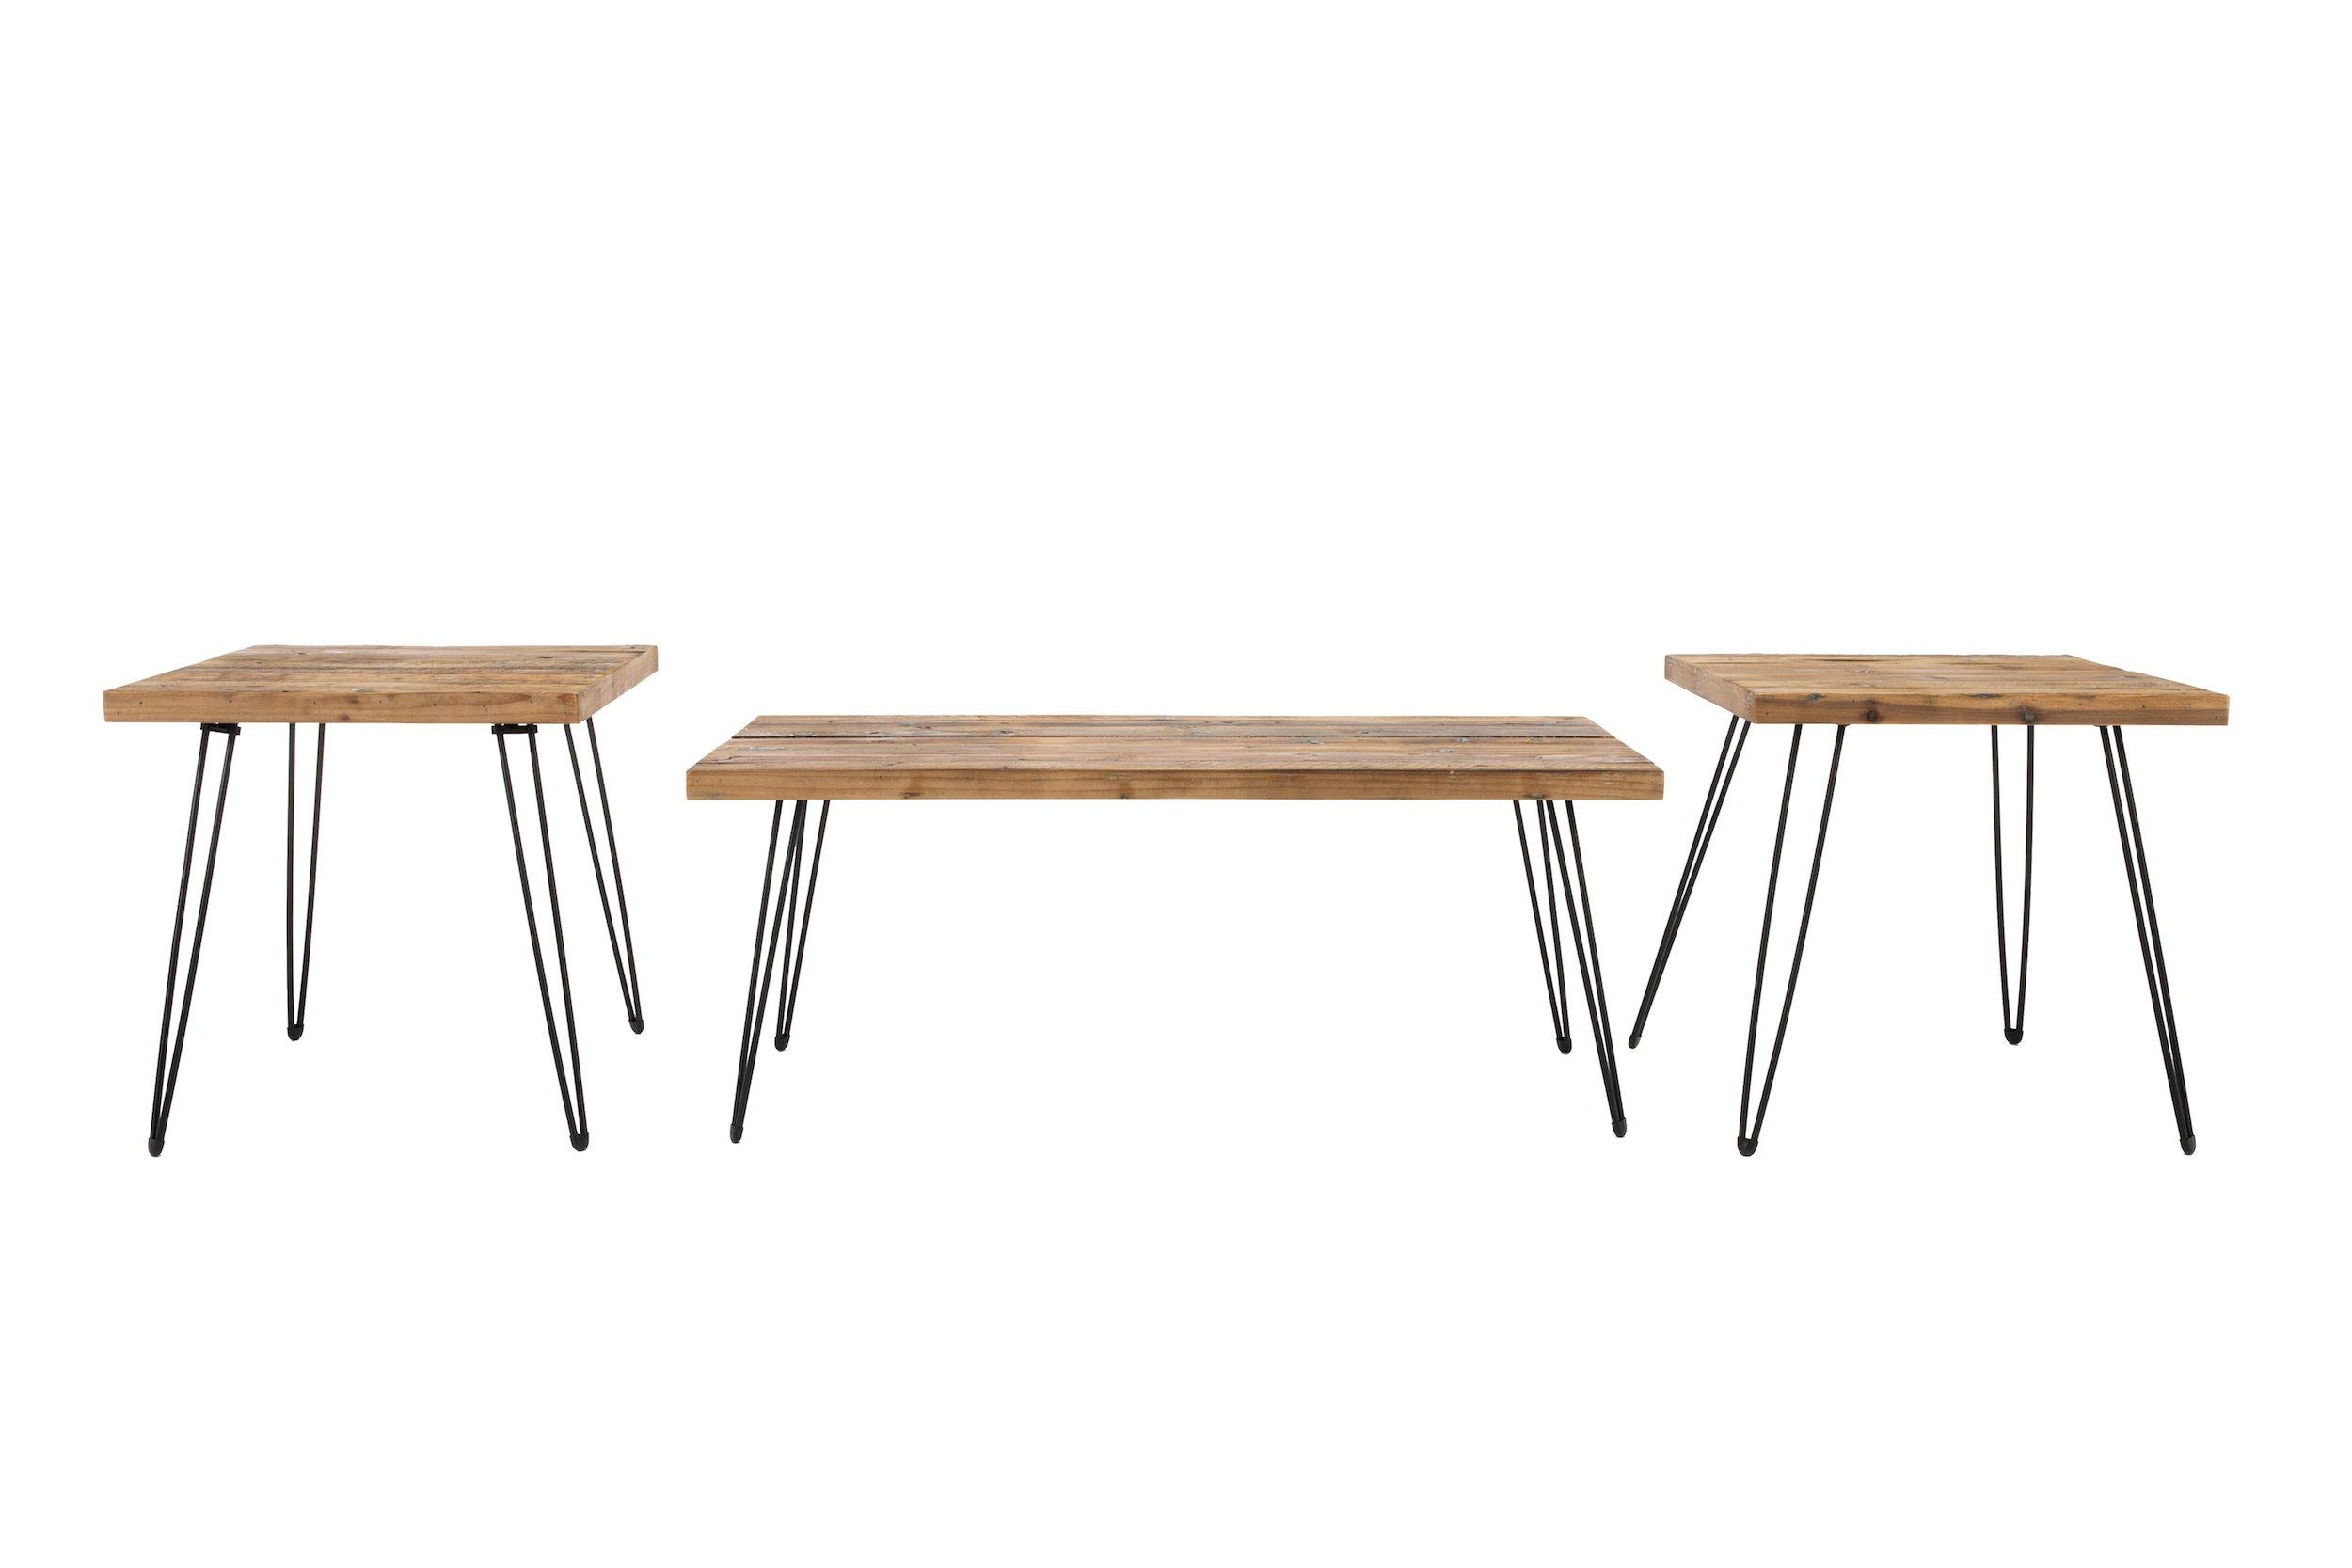 Belmont Home Reclaimed Wood and Metal Tables (Set of 3) by Belmont Home